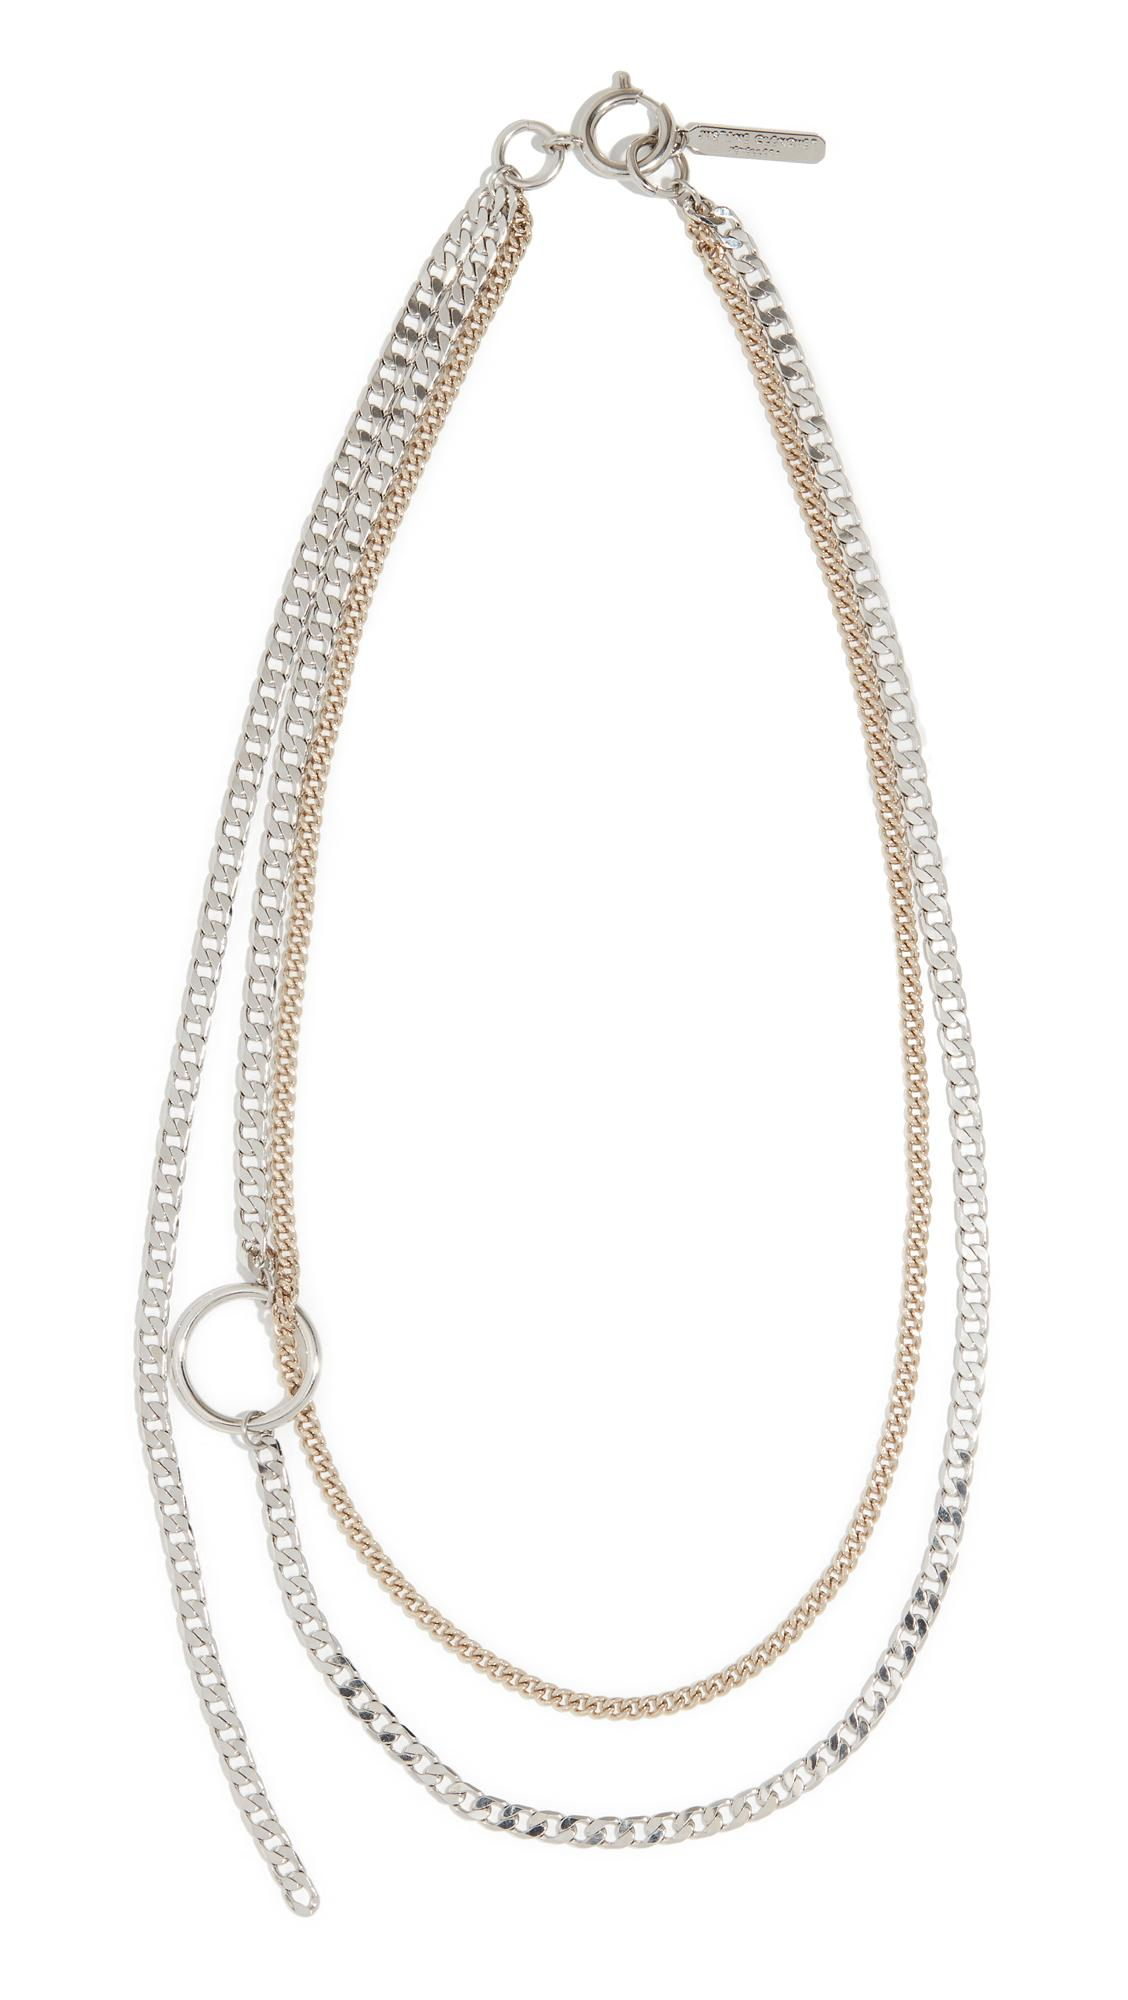 Justine Clenquet Jane Necklace in Gold/Silver (Metallic)